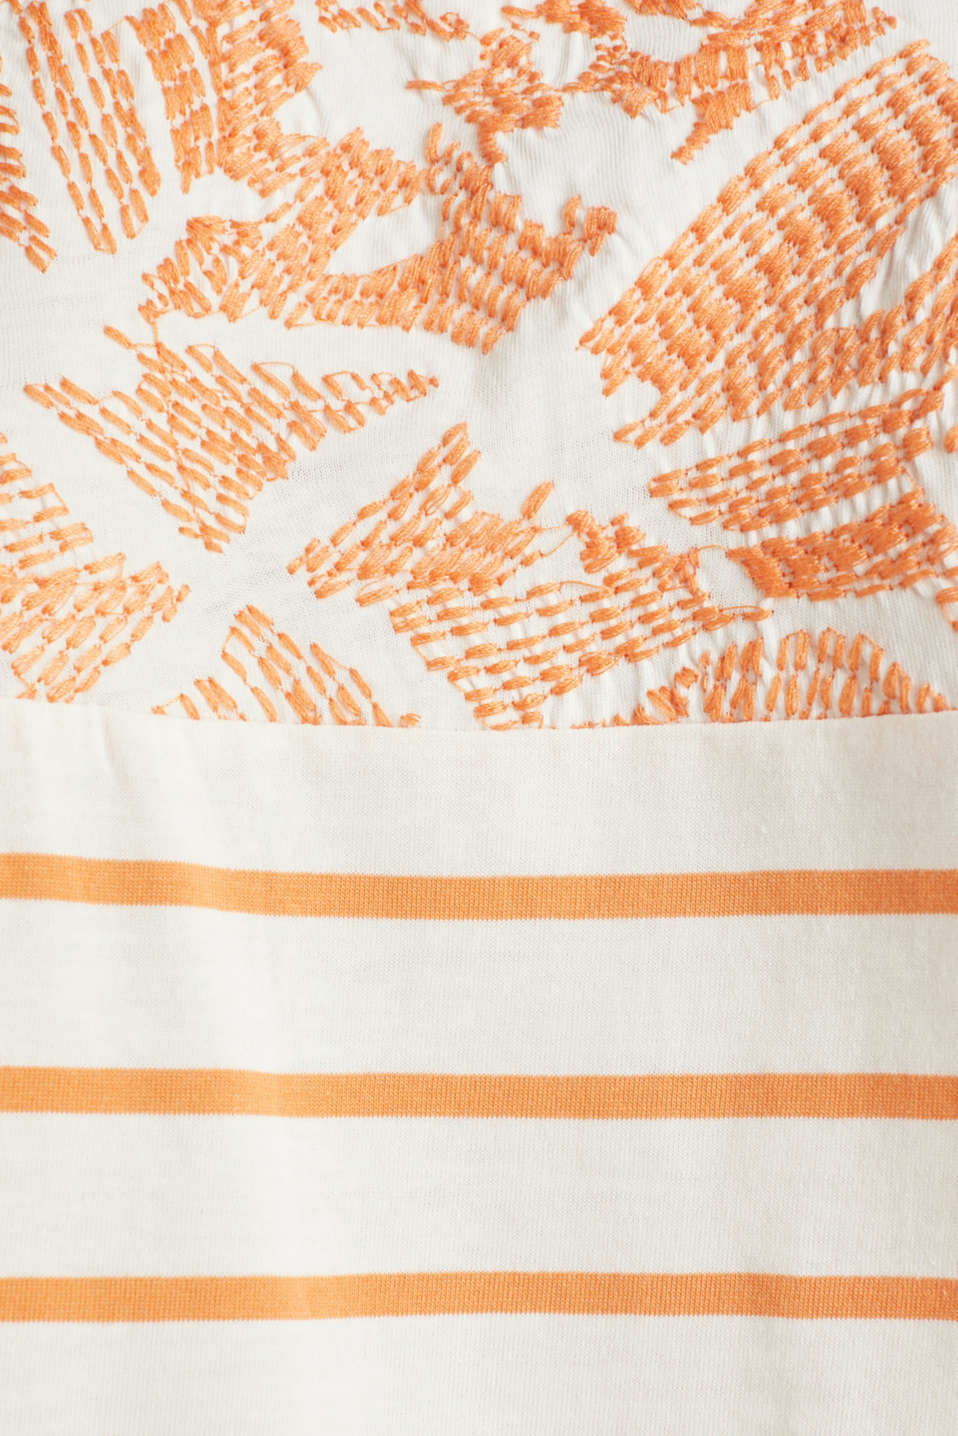 Embroidered top, organic cotton, RUST ORANGE, detail image number 4